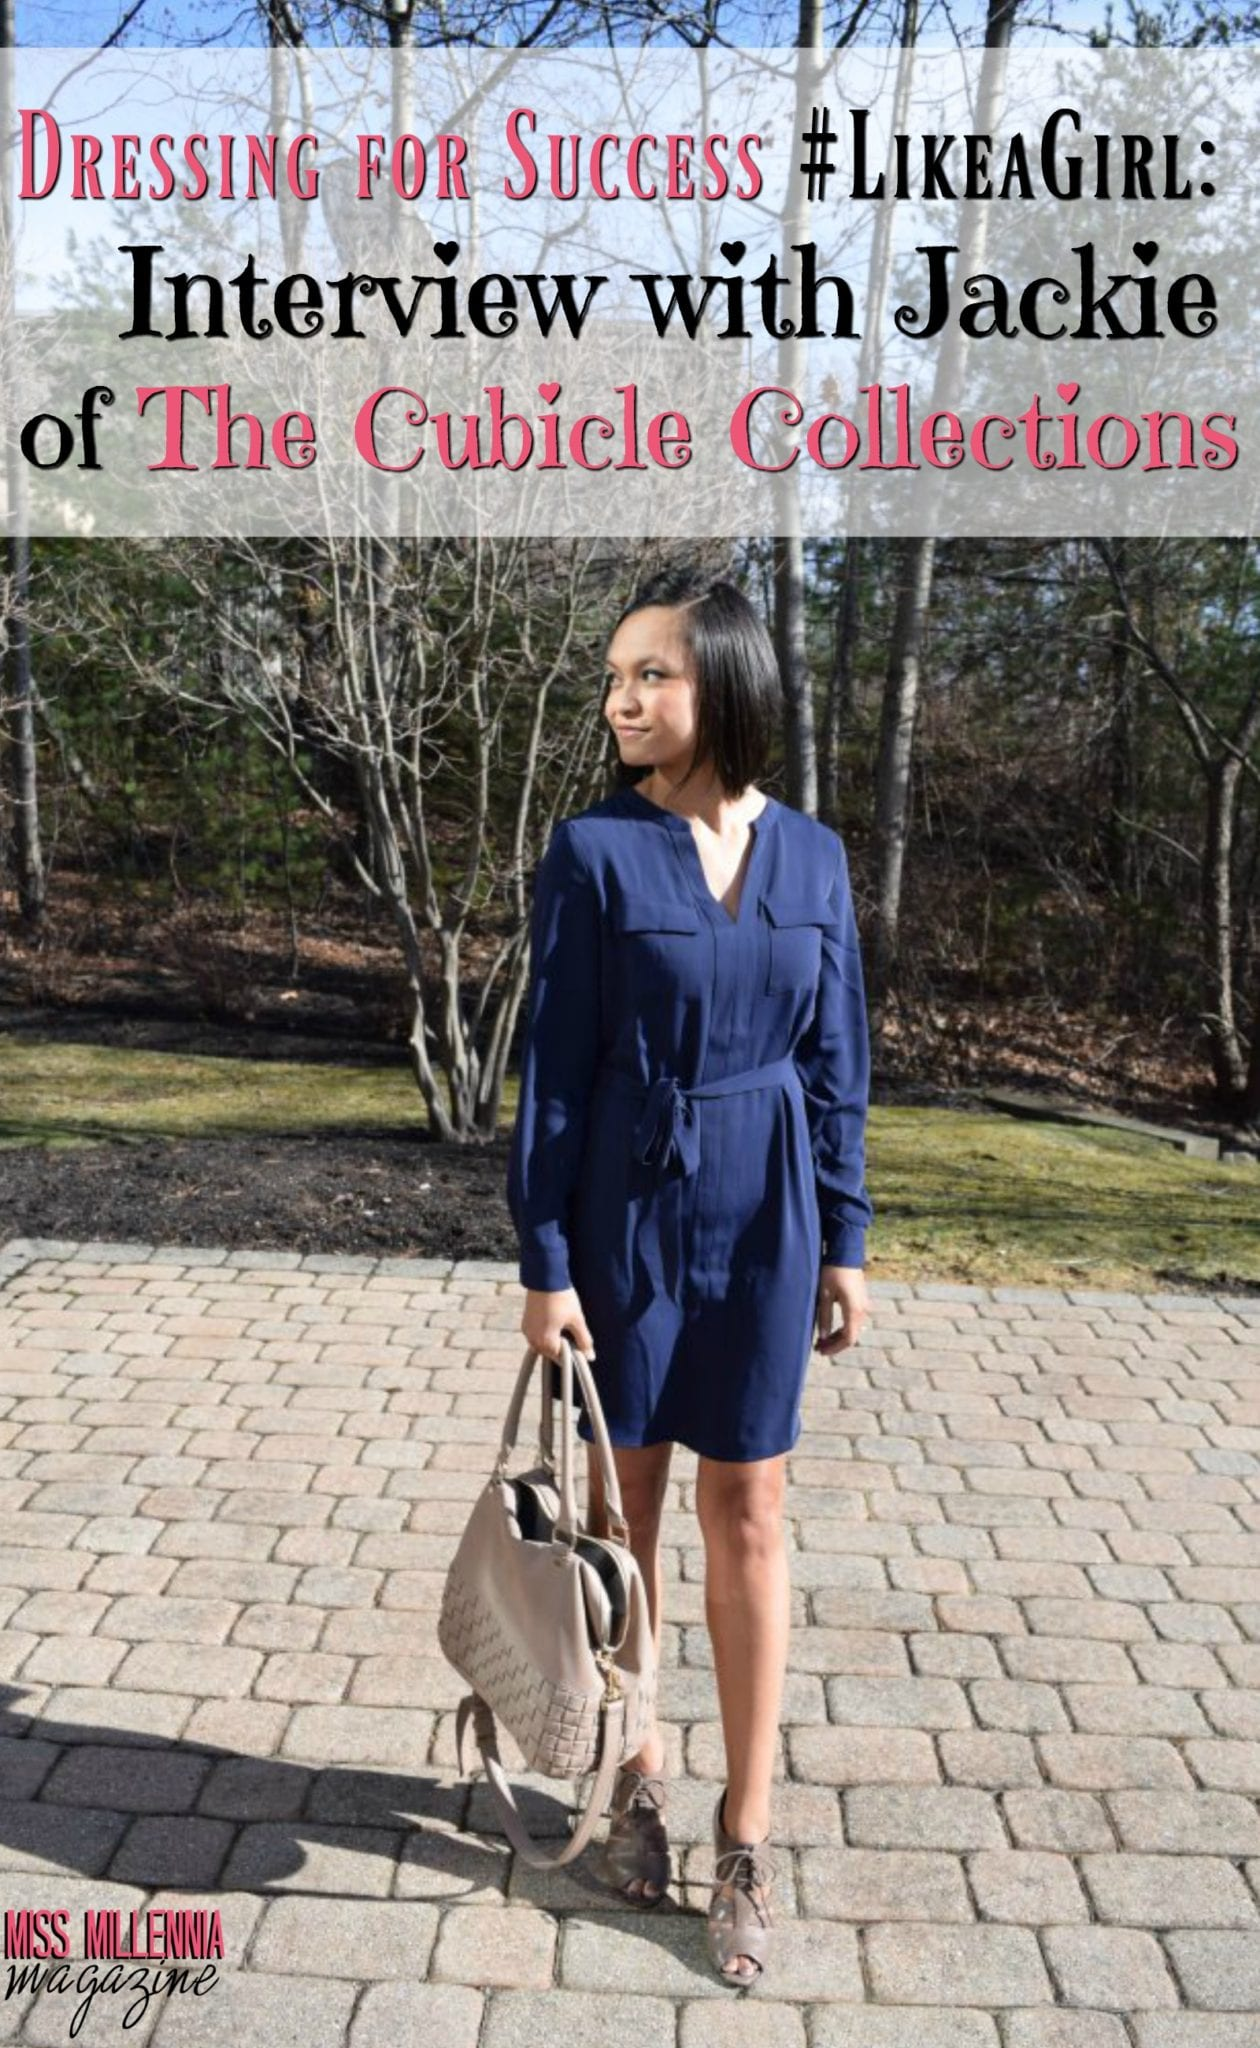 dressing-for-success-likeagirl-interview-with-jackie-of-the-cubicle-collections